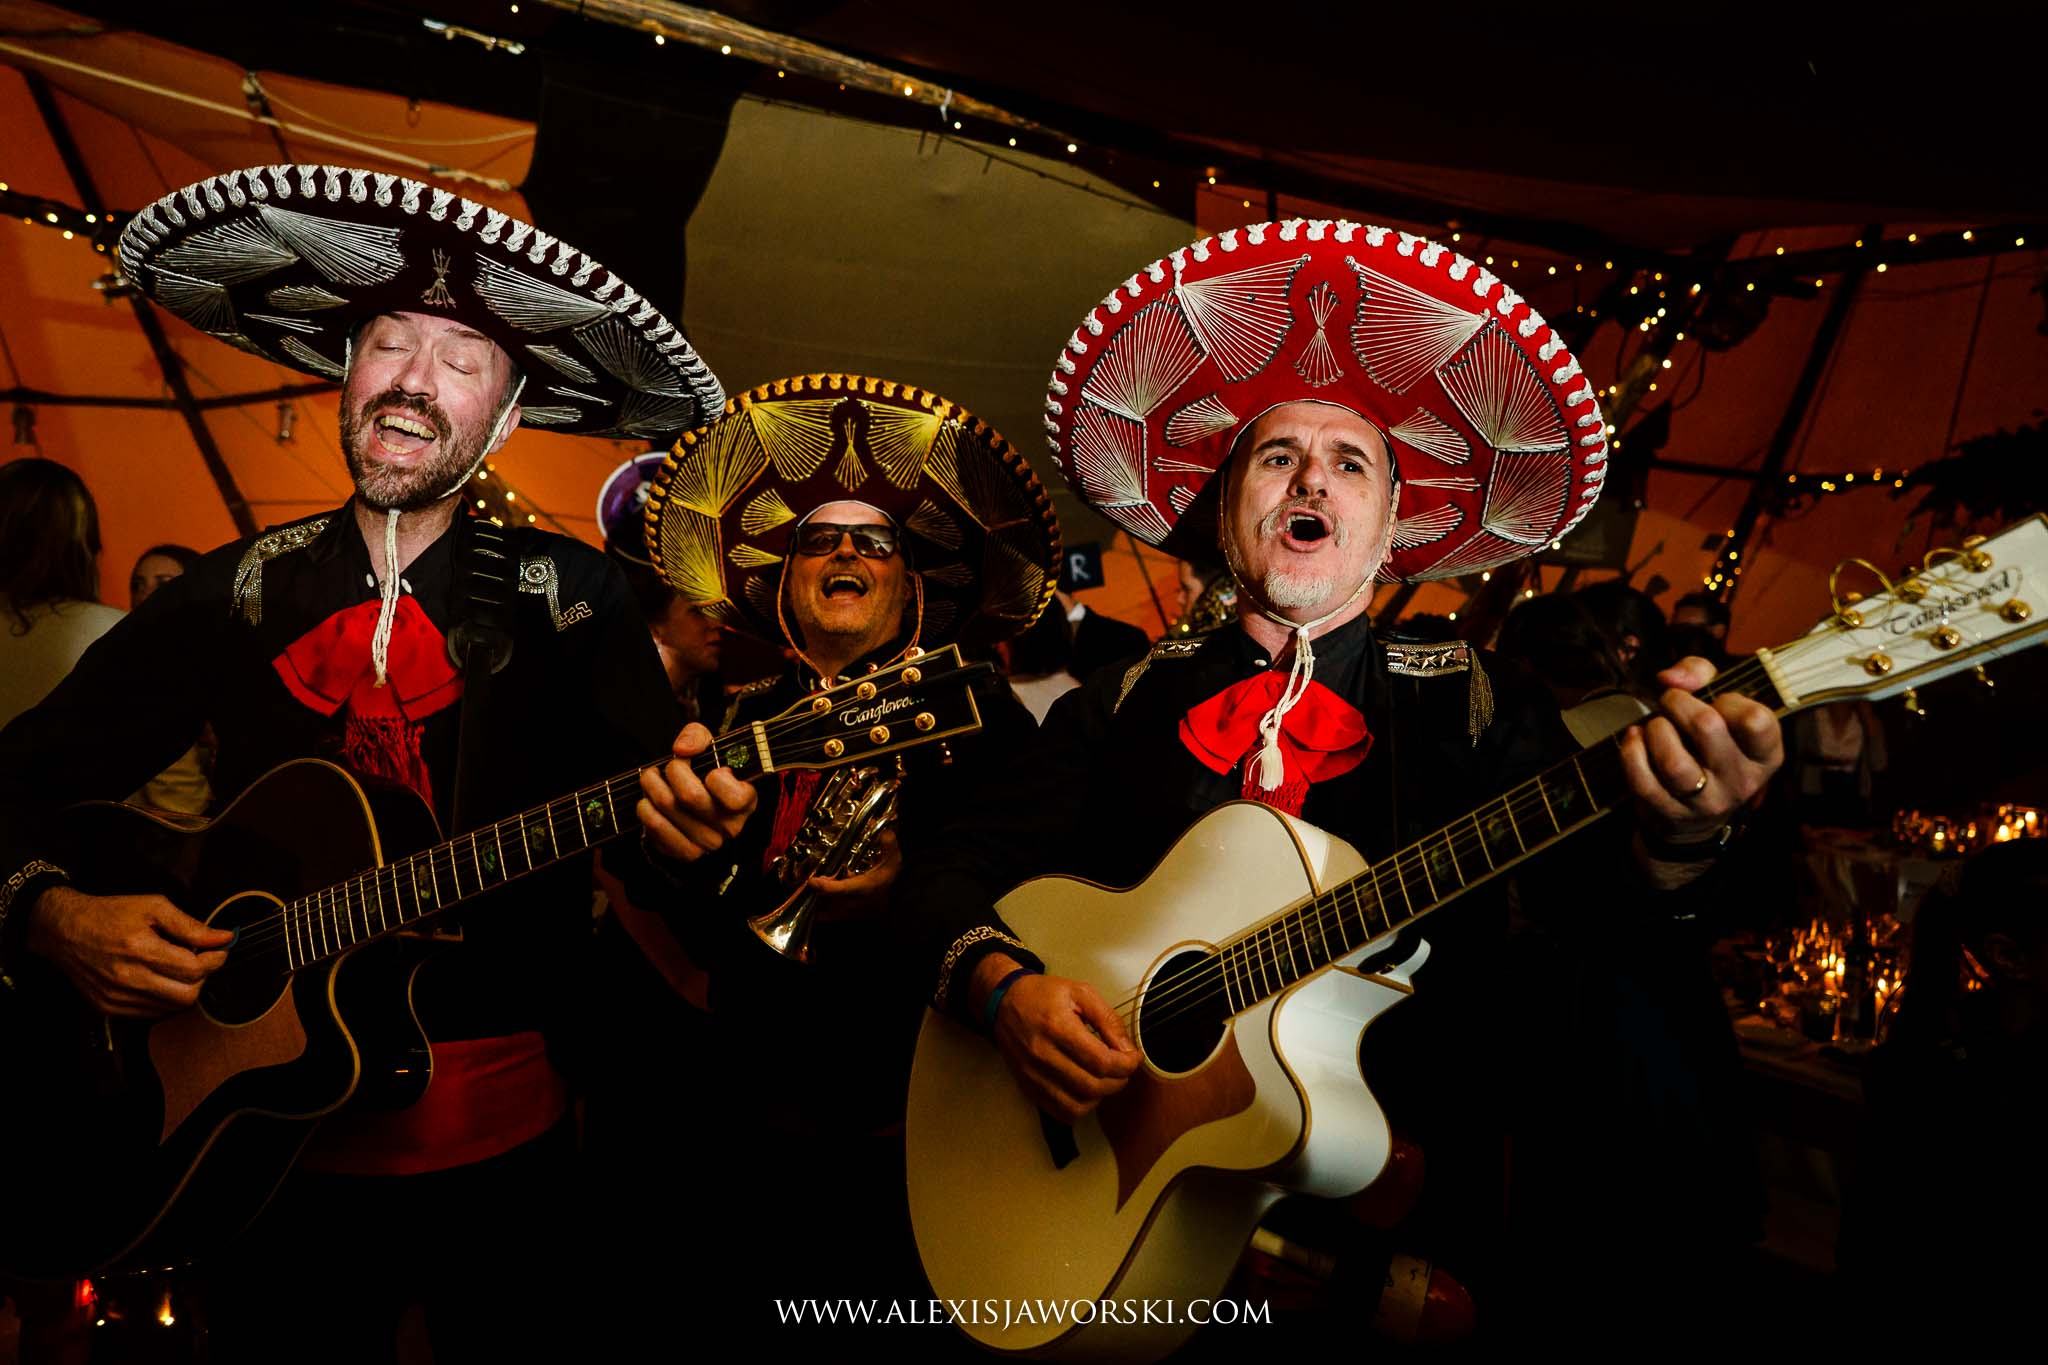 the mariachi band